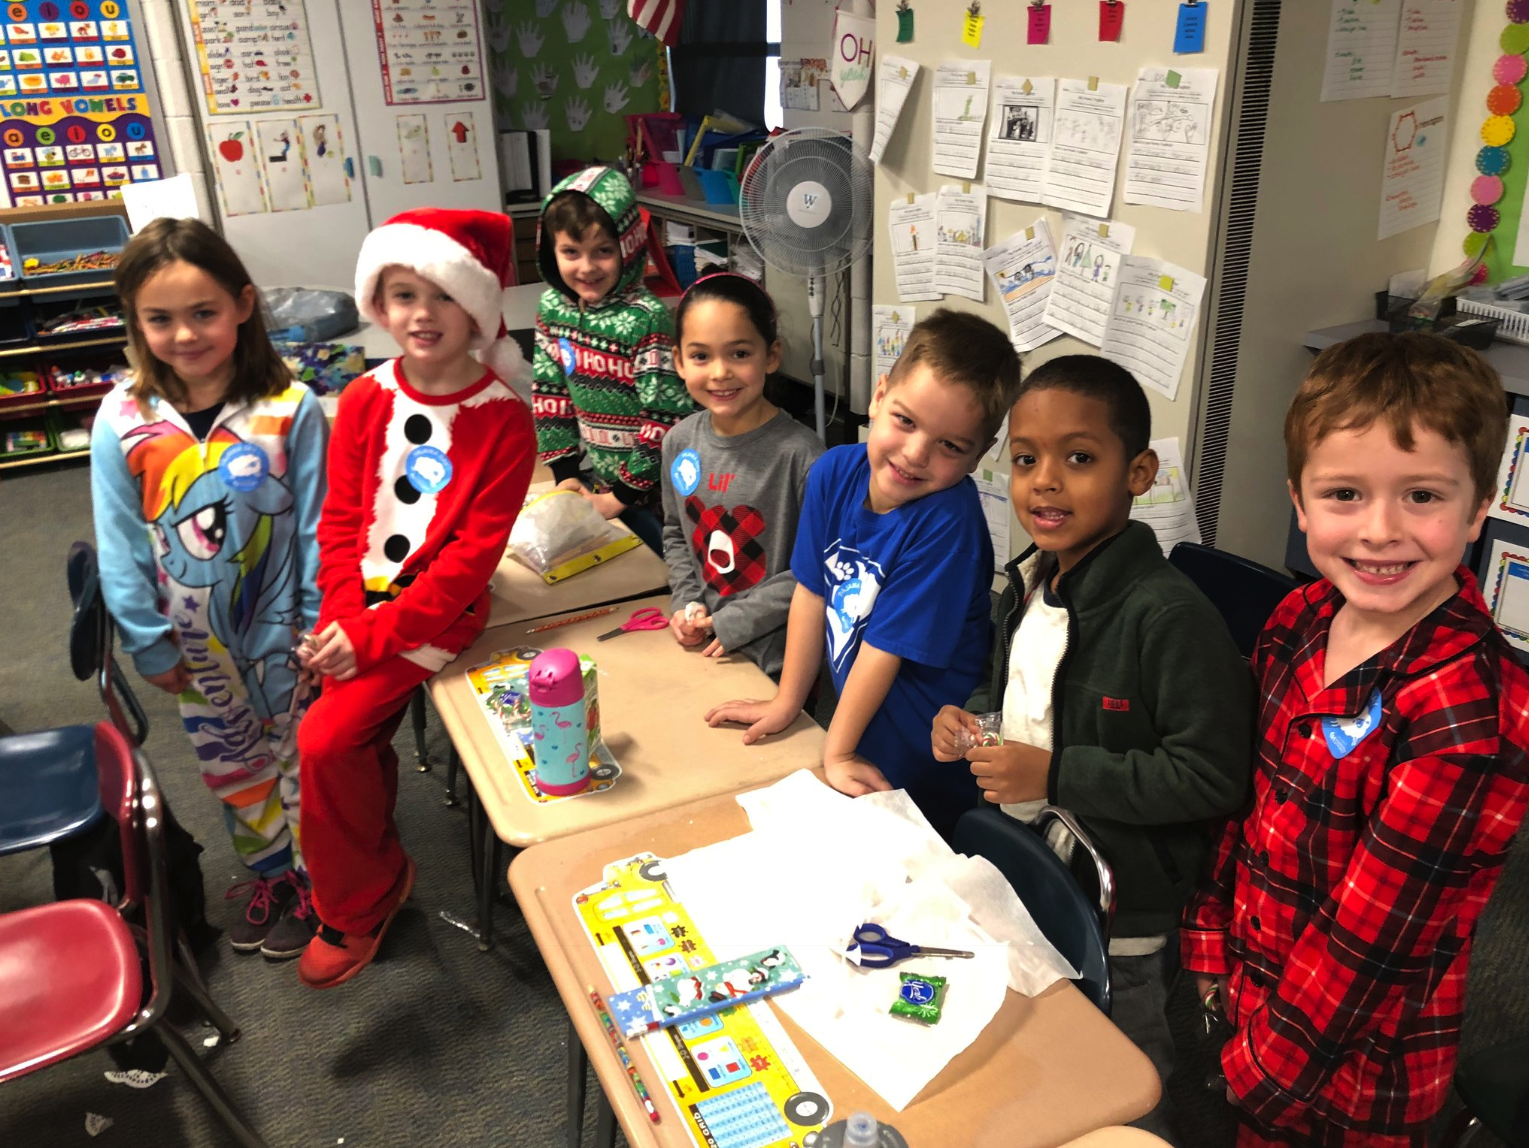 seven children wearing their pajamas in a classroom